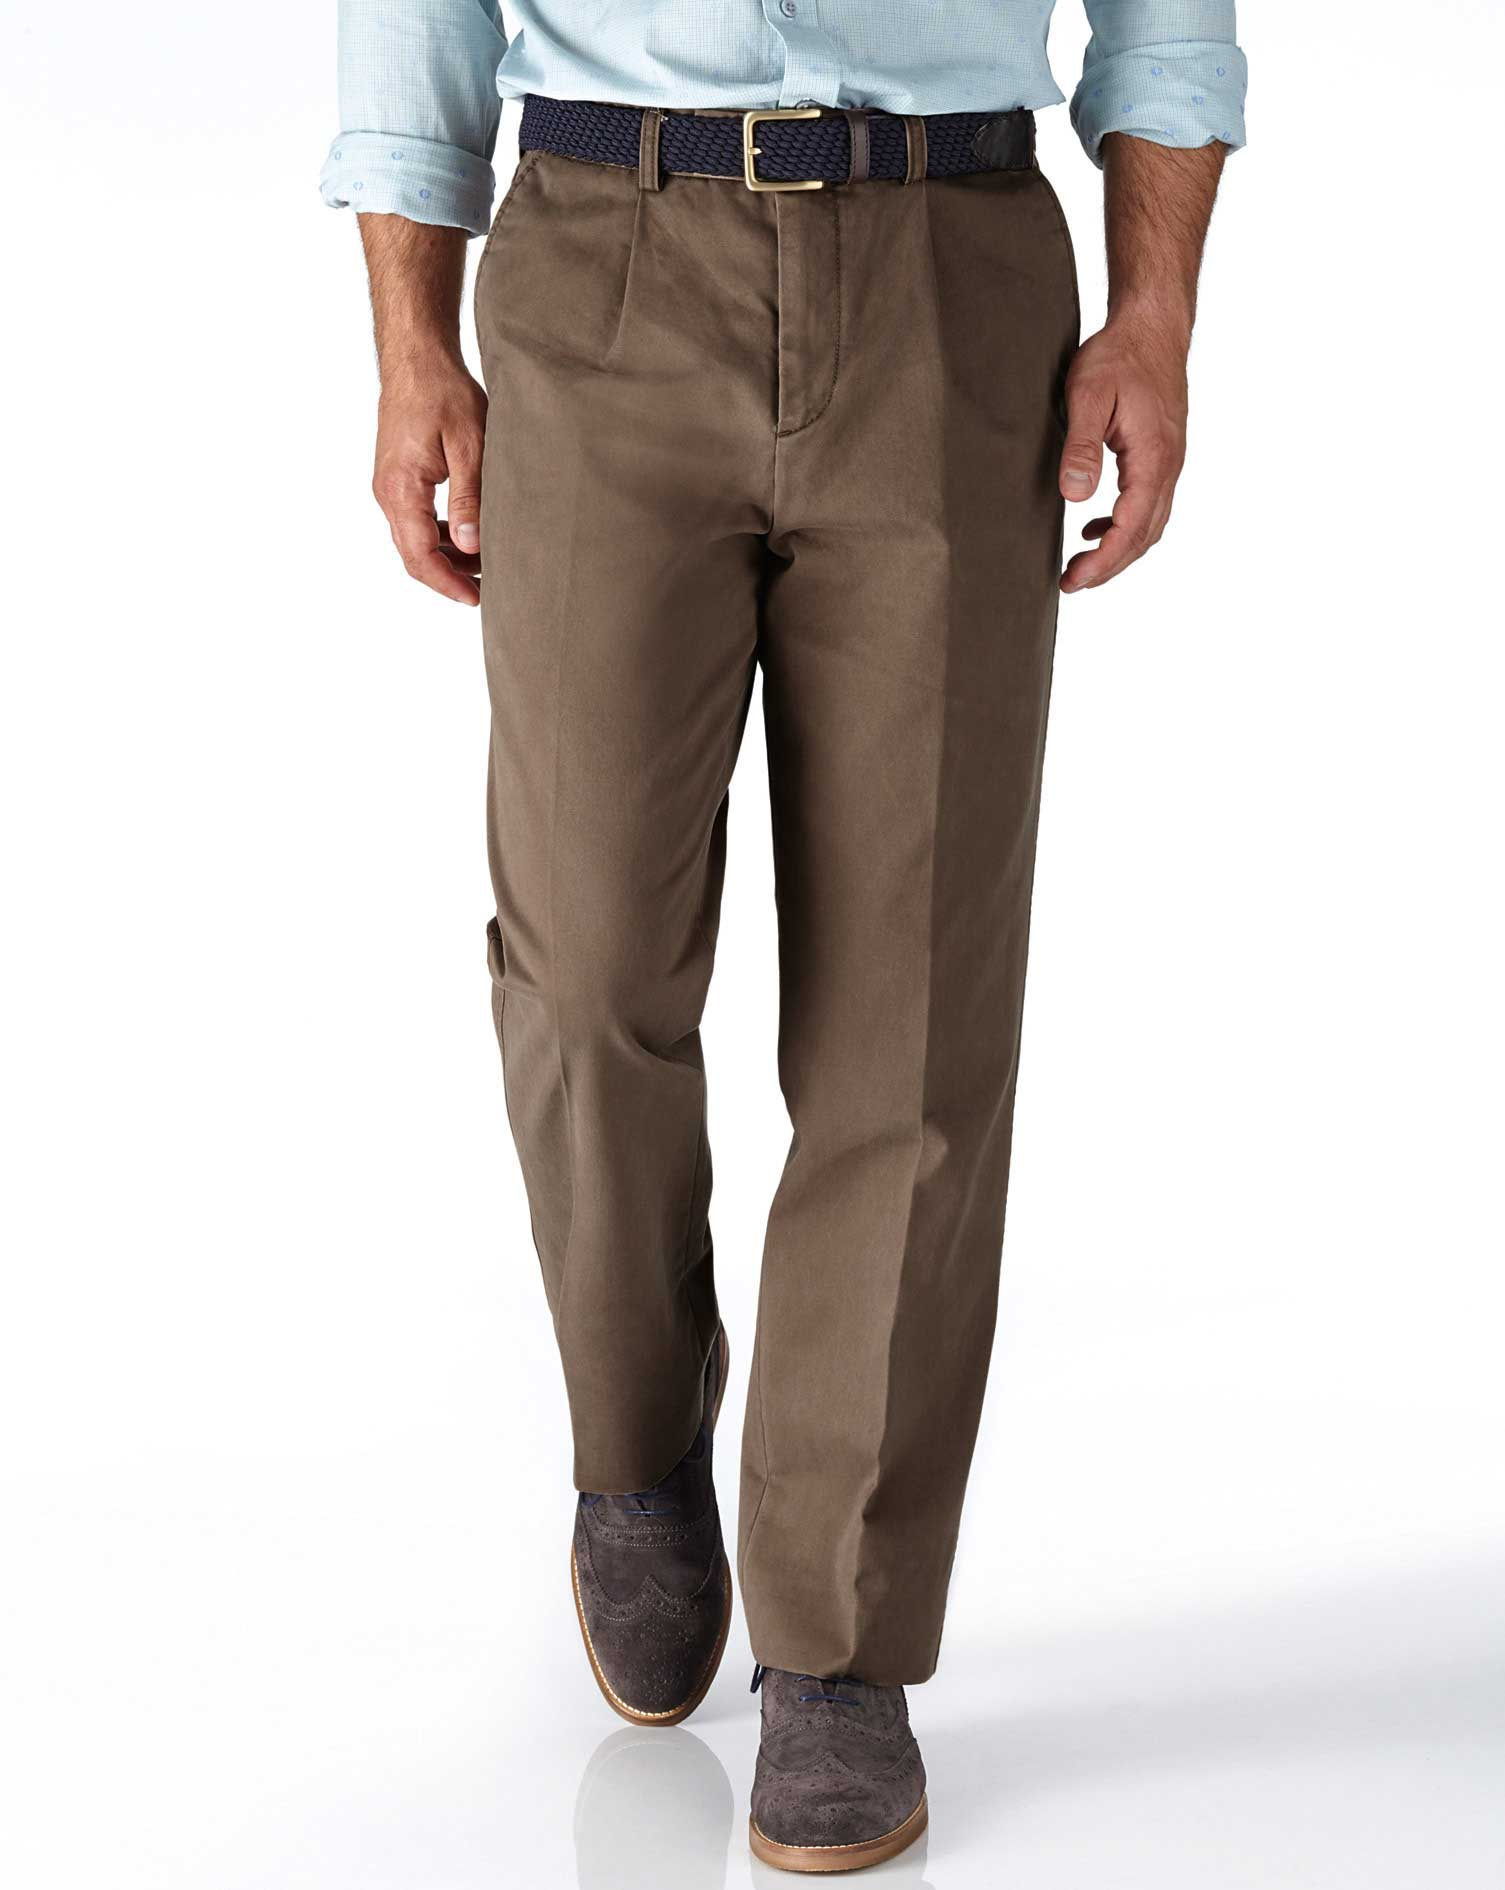 Light Brown Classic Fit Single Pleat Cotton Chino Trousers Size W32 L38 by Charles Tyrwhitt